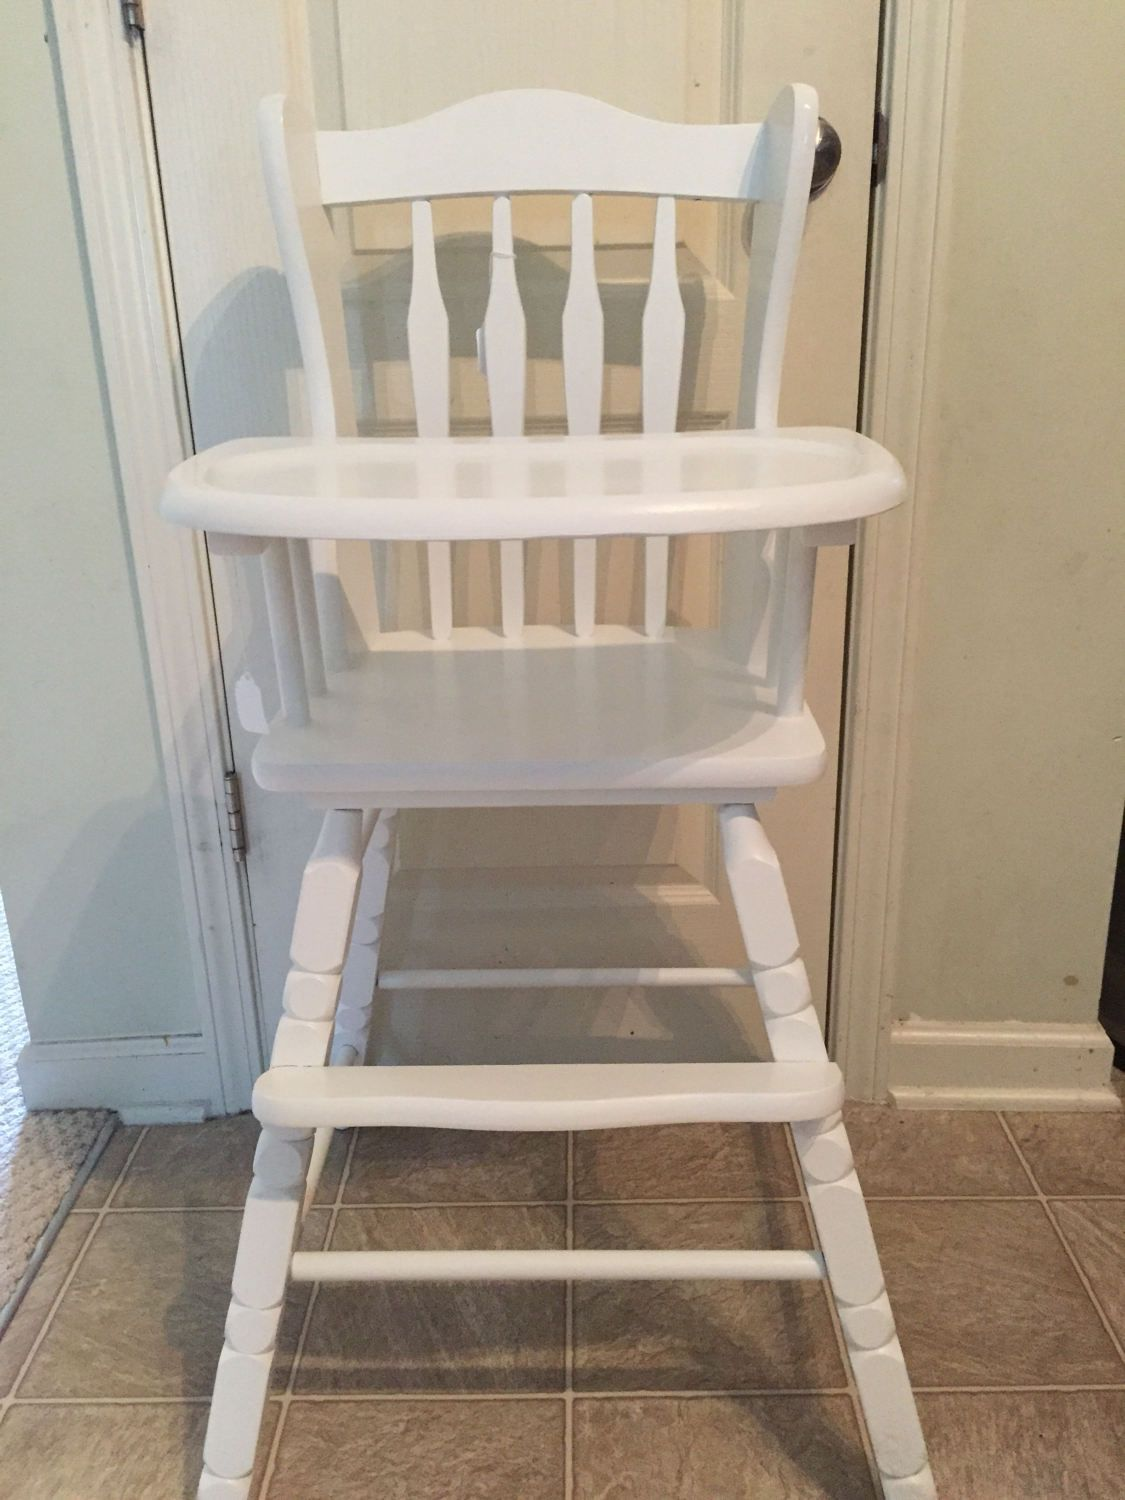 Vintage Wooden High Chair Jenny Lind Antique High Chair Vintage High Chair & Vintage Wooden High Chair Jenny Lind Antique High Chair Vintage ...